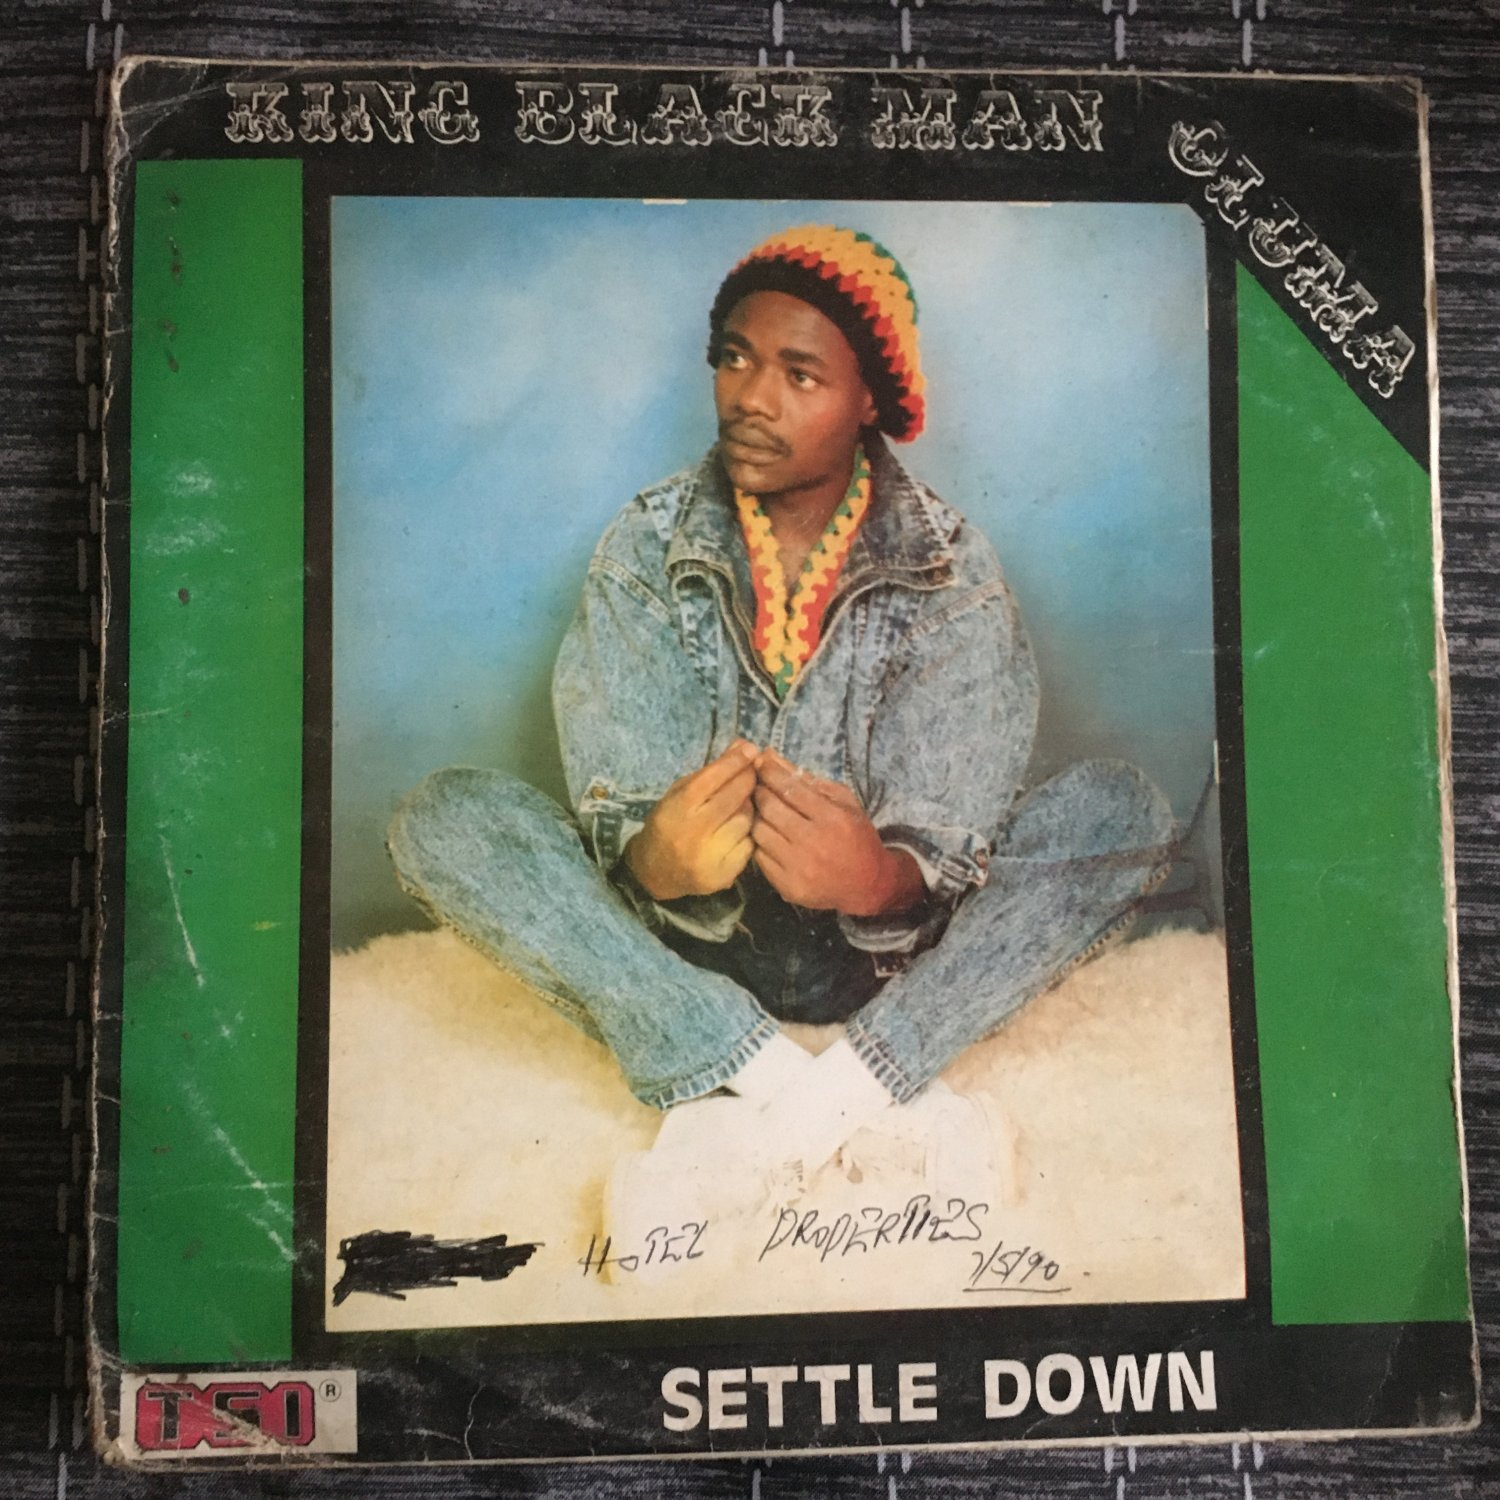 KING BLACK MAN OLUMA LP settle down NIGERIA REGGAE mp3 LISTEN